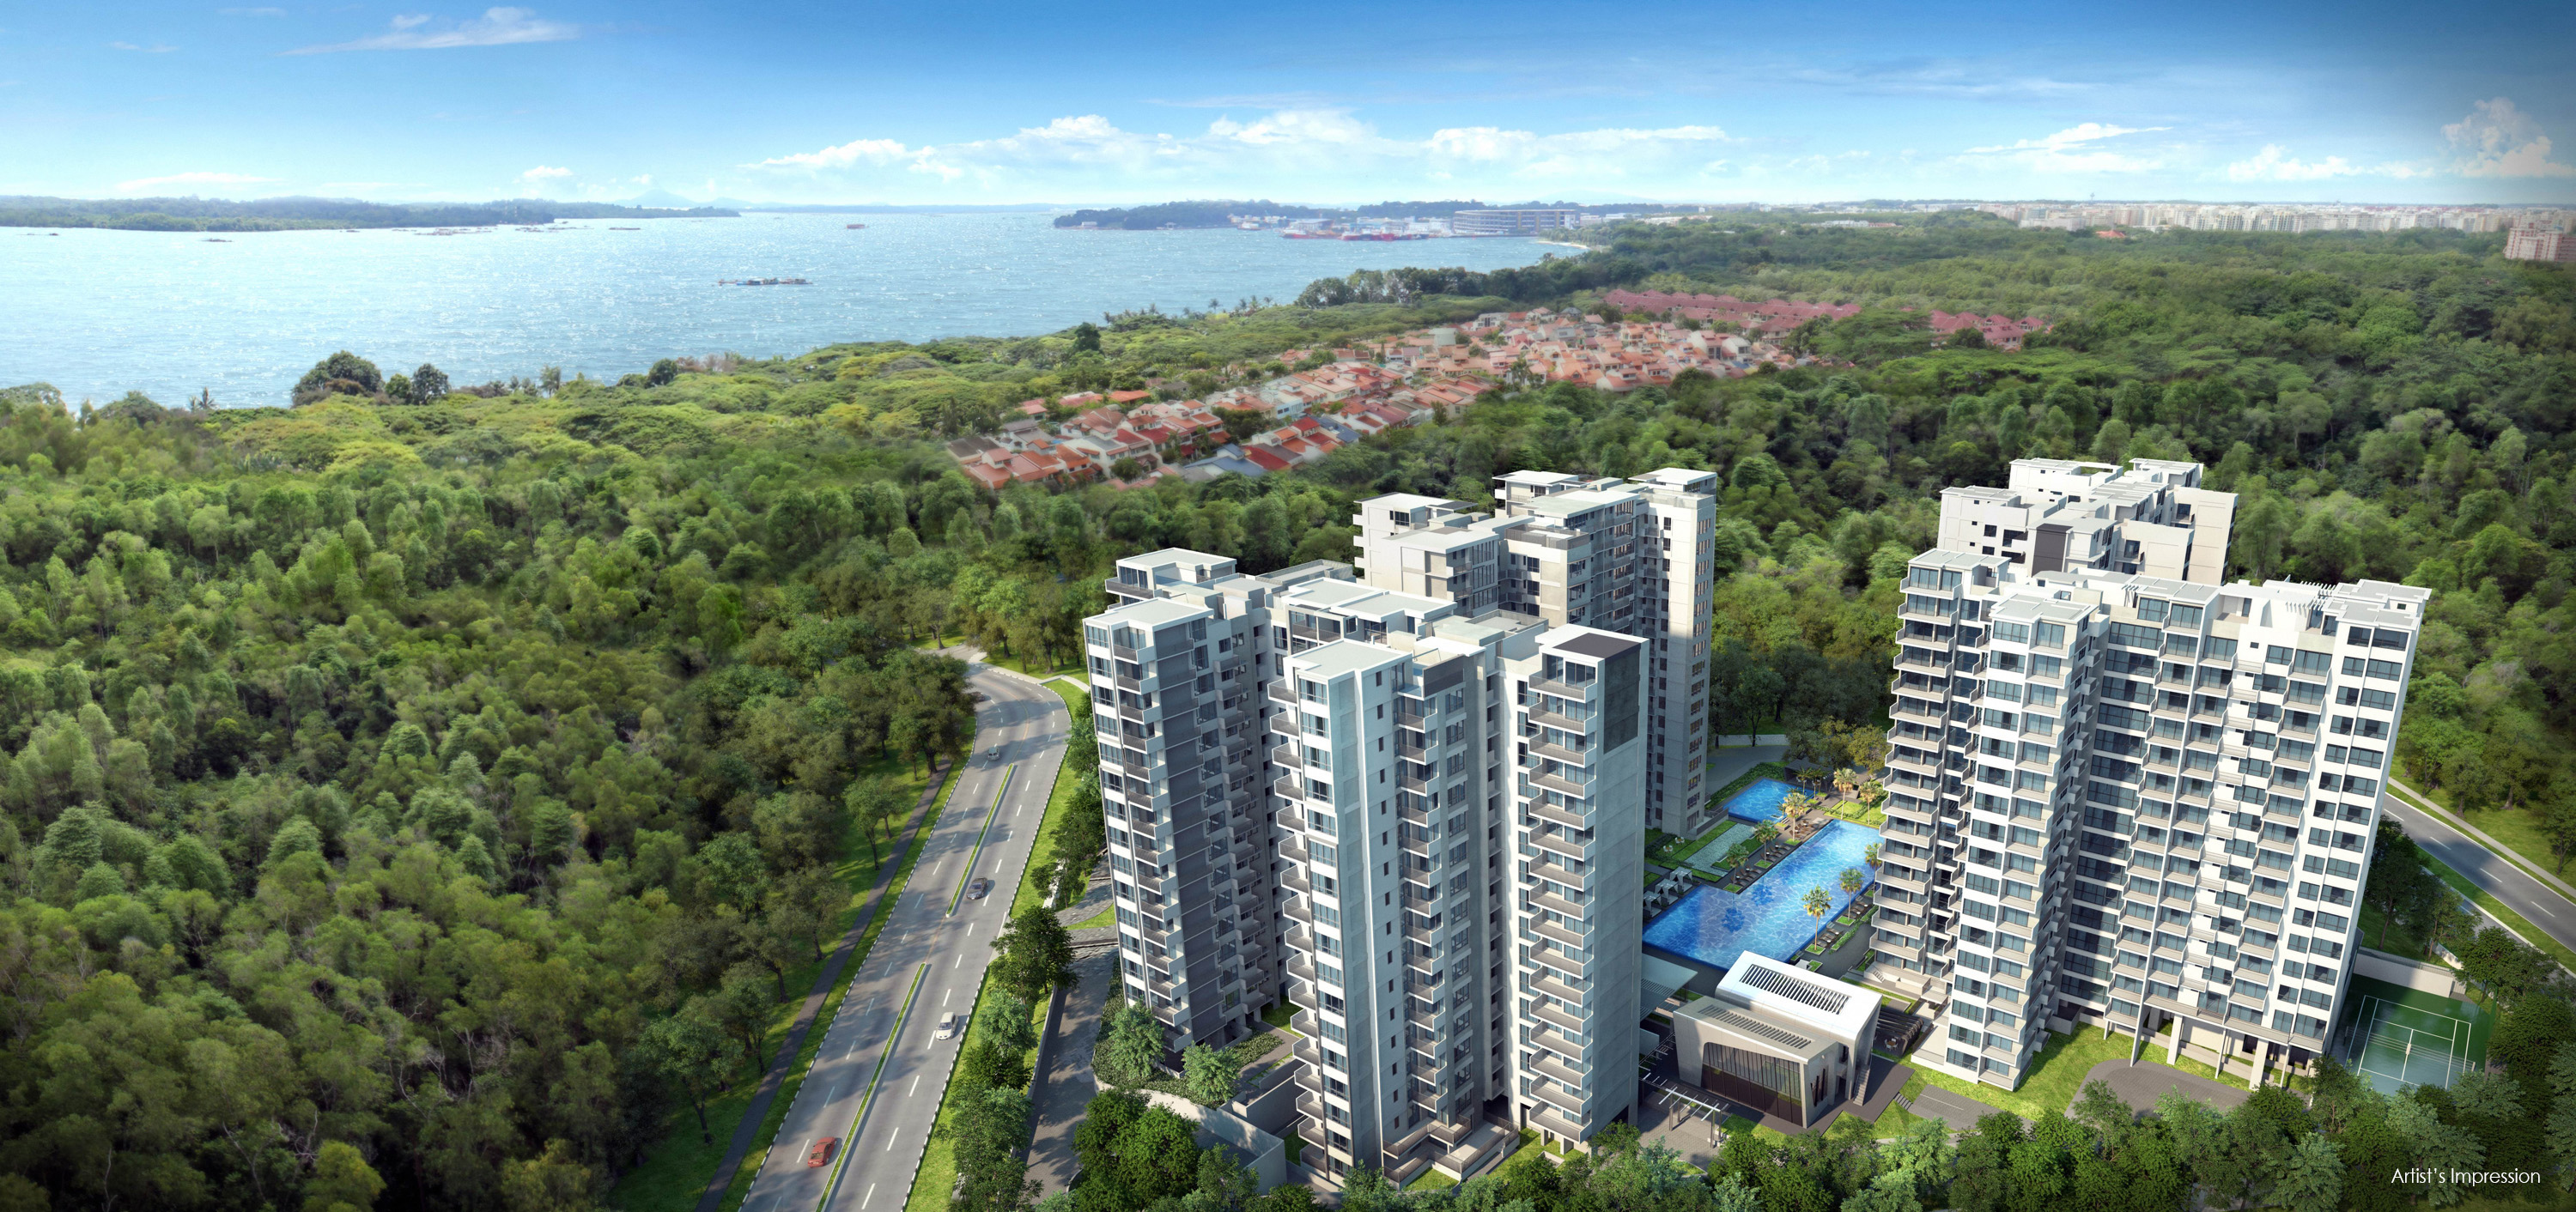 Vue 8 Residences Aerial View